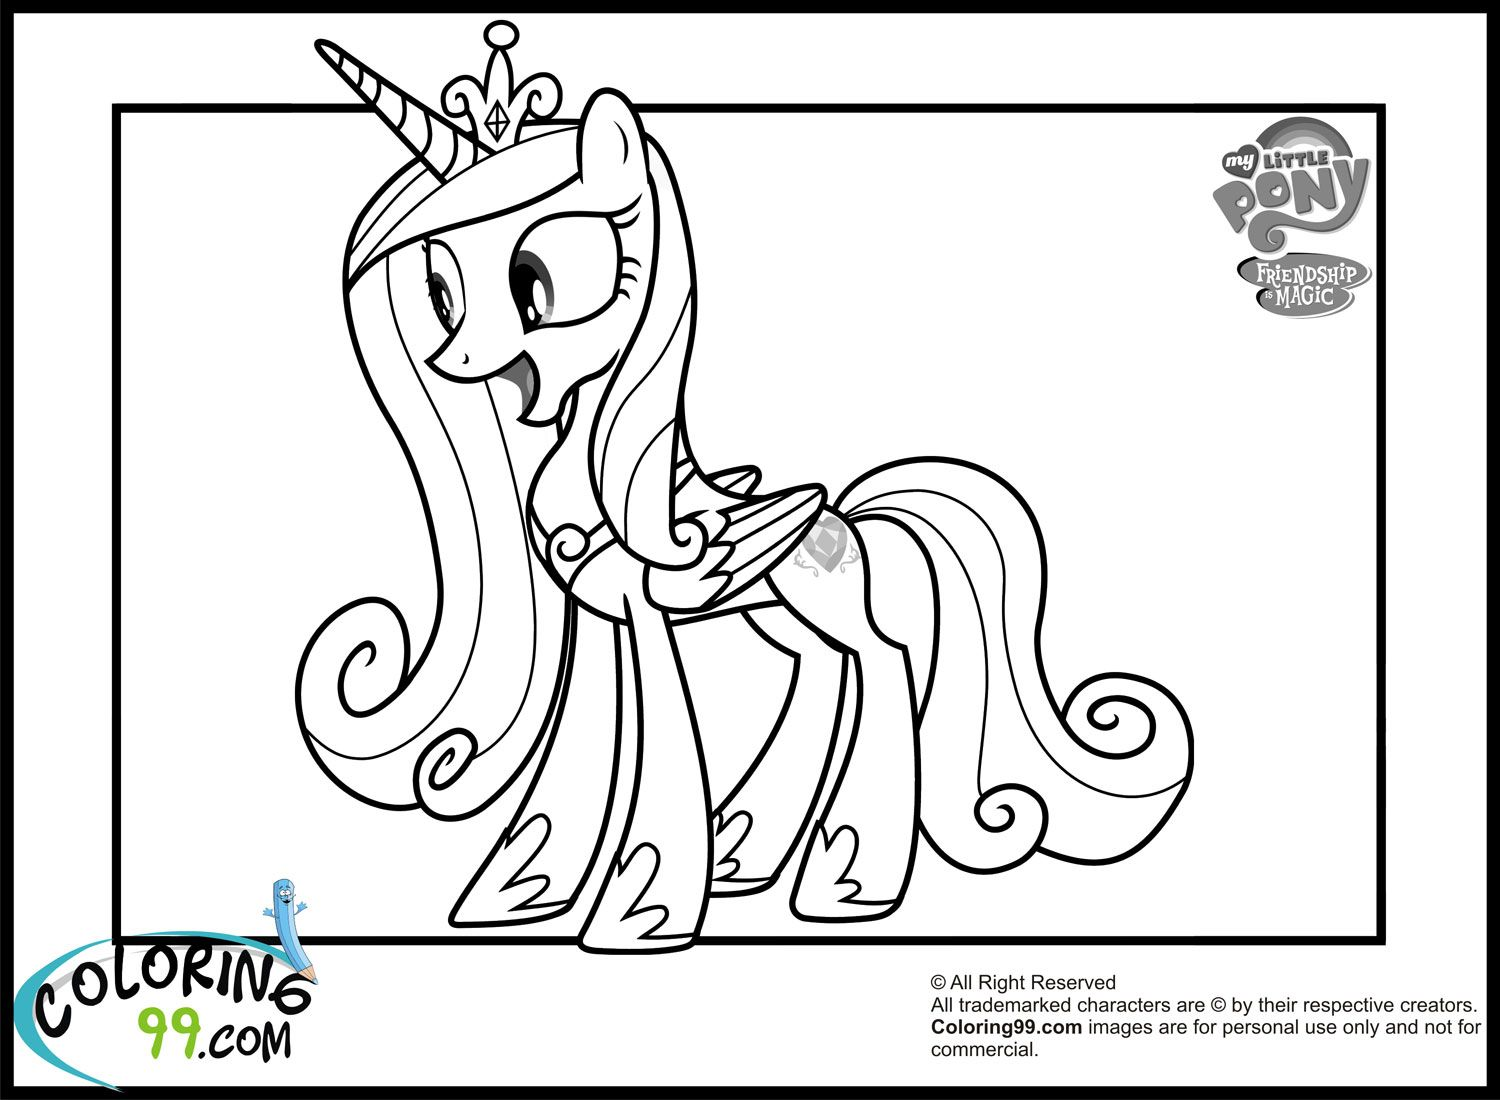 Princess Cadance | My little pony | Pinterest | Princess